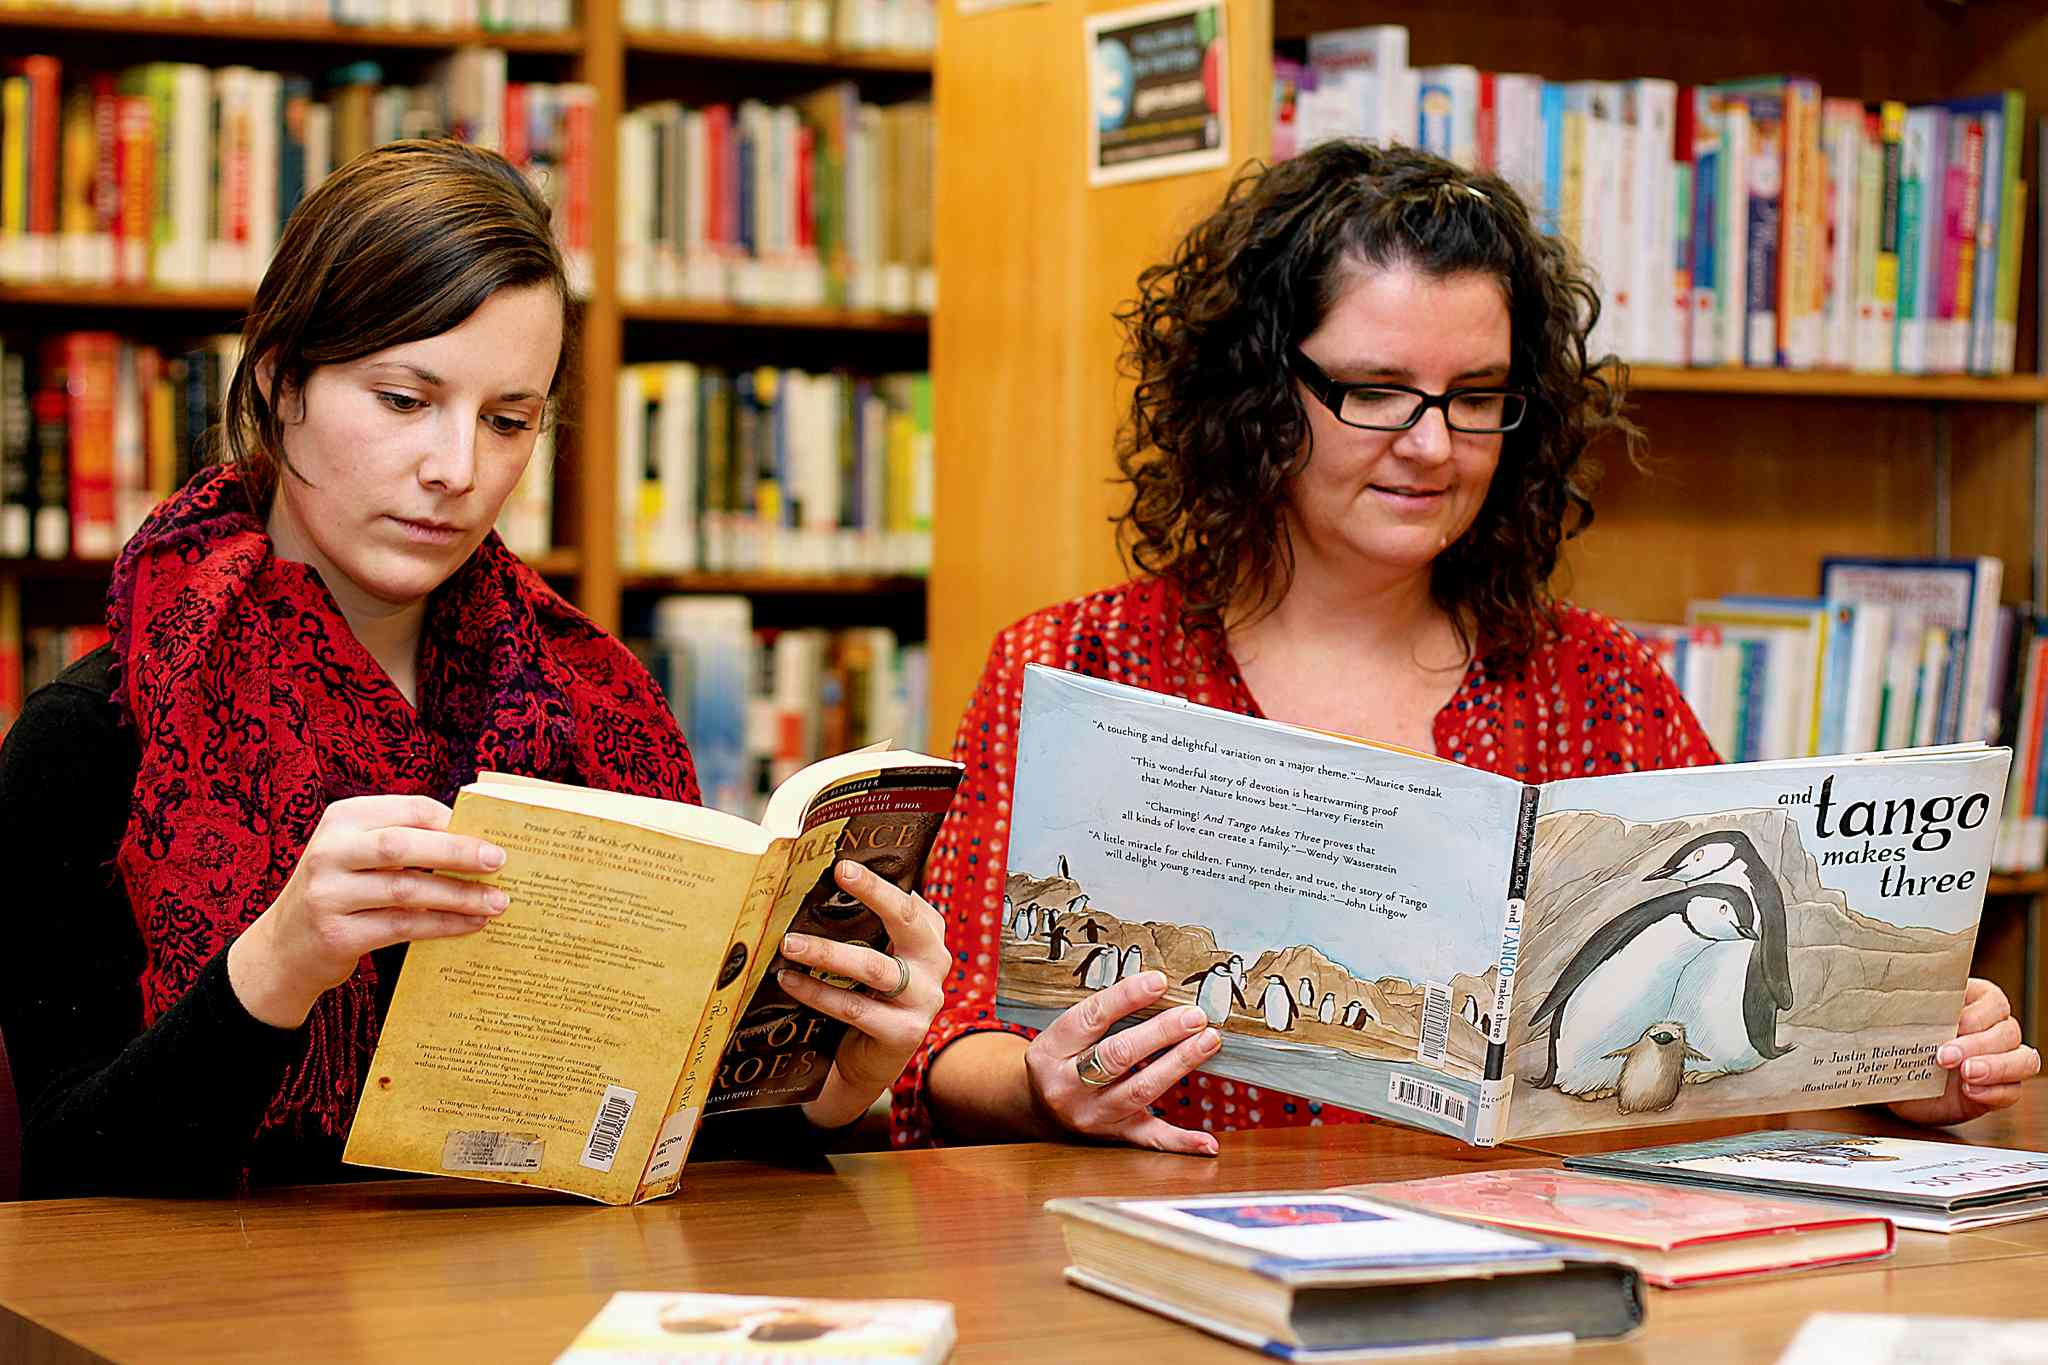 Kirsten Wurmann (right) and library assistant Britt Embry will be participating in the Freedom to Read Marathon on Feb. 28.